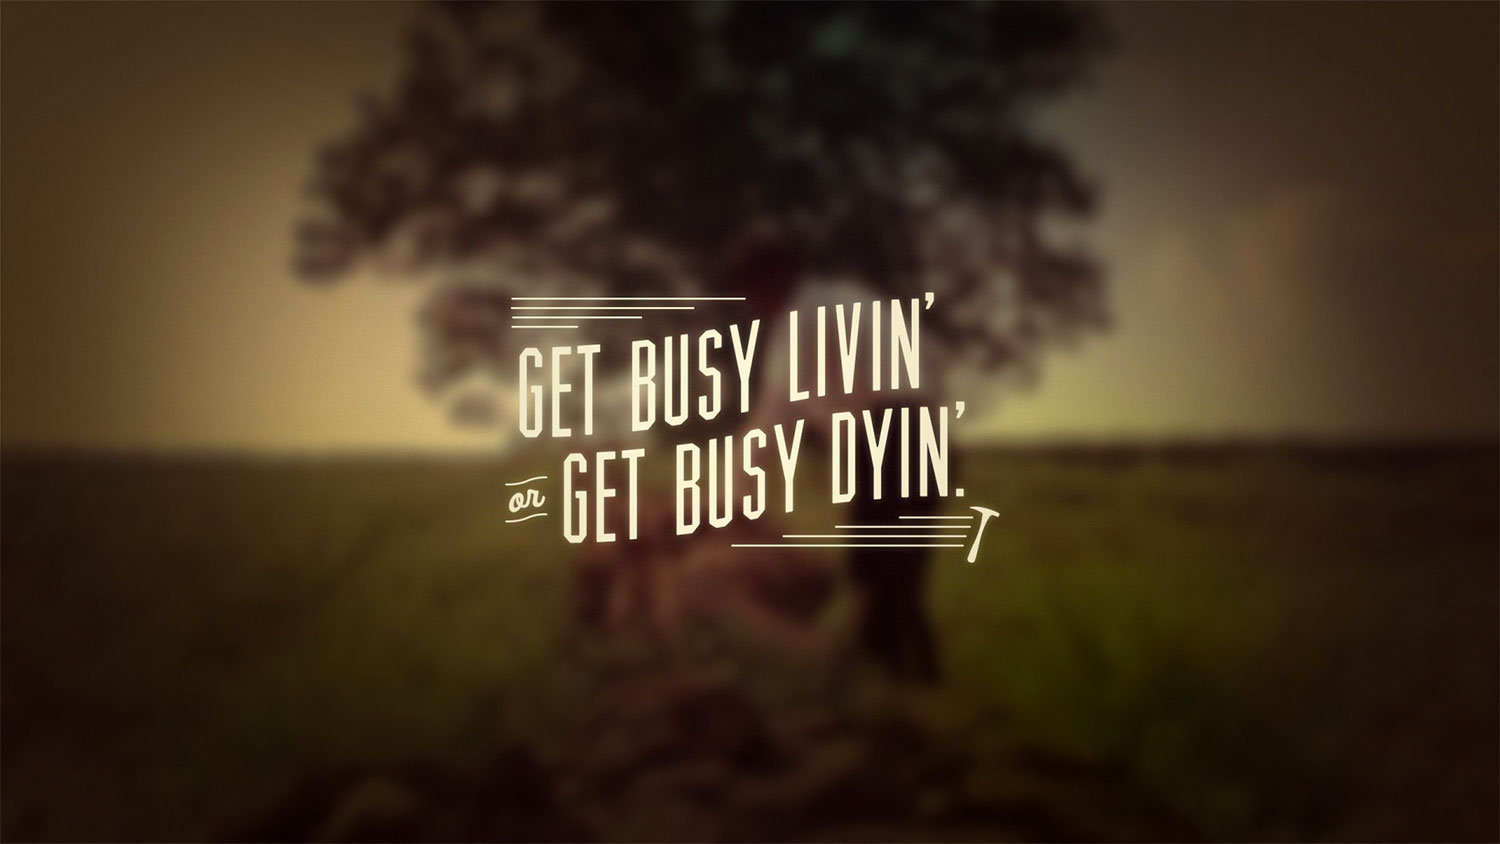 Blurred image of a tree with text overlaid saying 'Get busy livin' or get busy dyin''